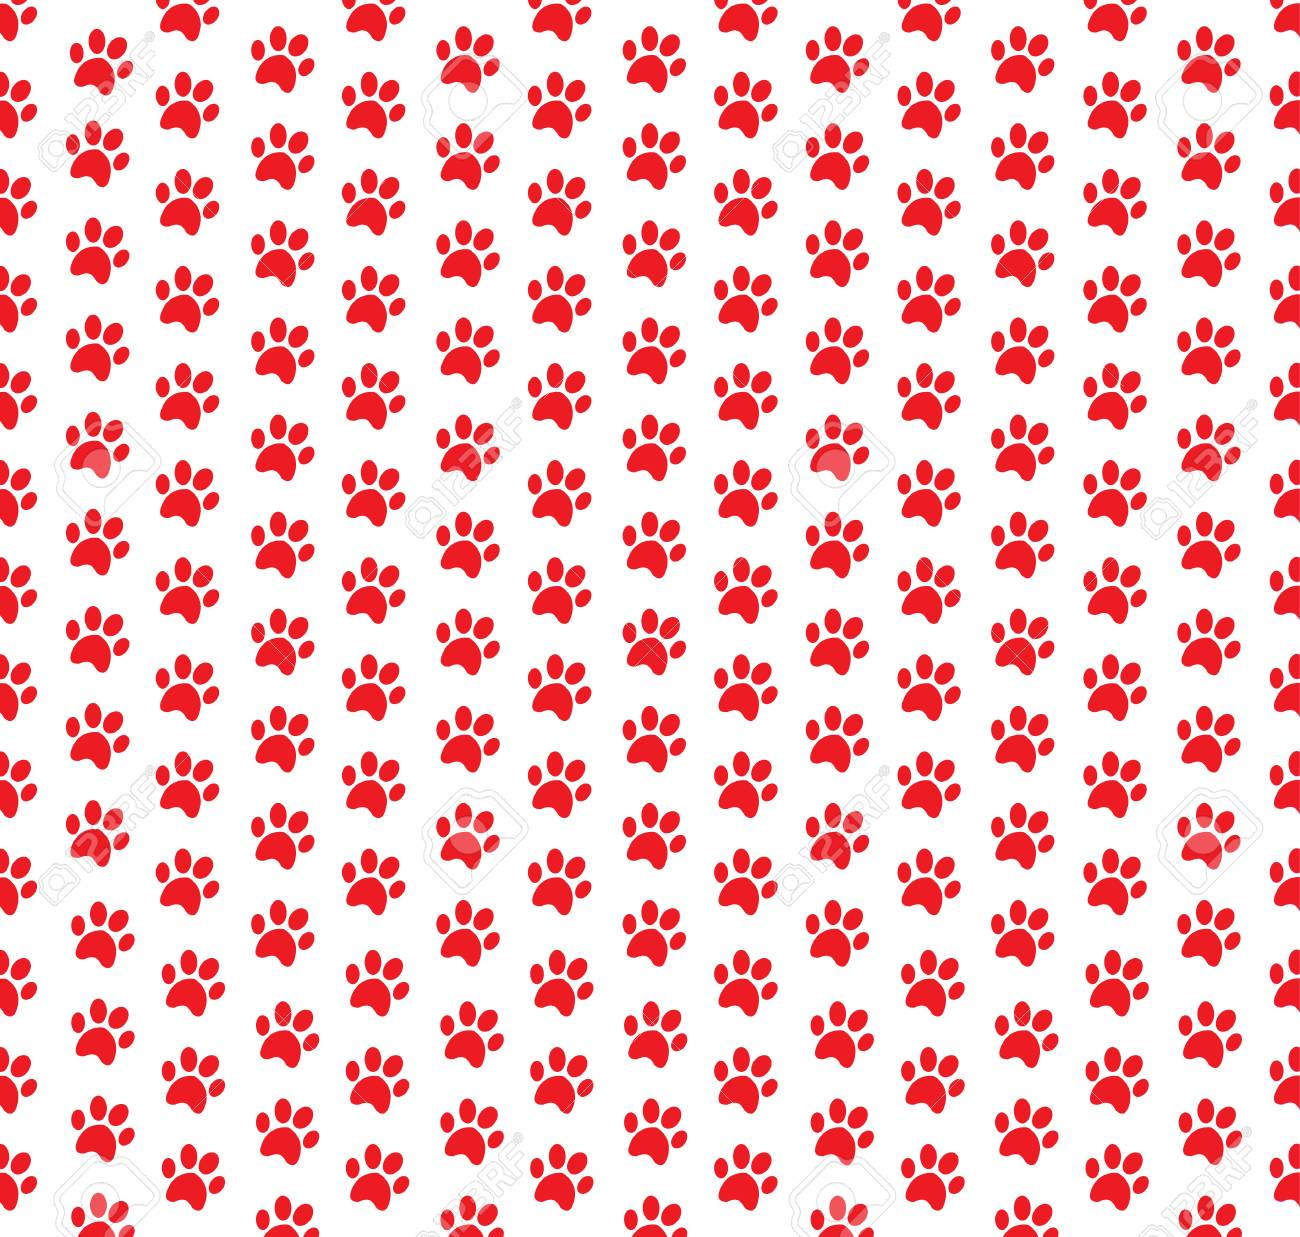 Square Seamless Pattern Of Red Animal Paw Prints On White Background ...